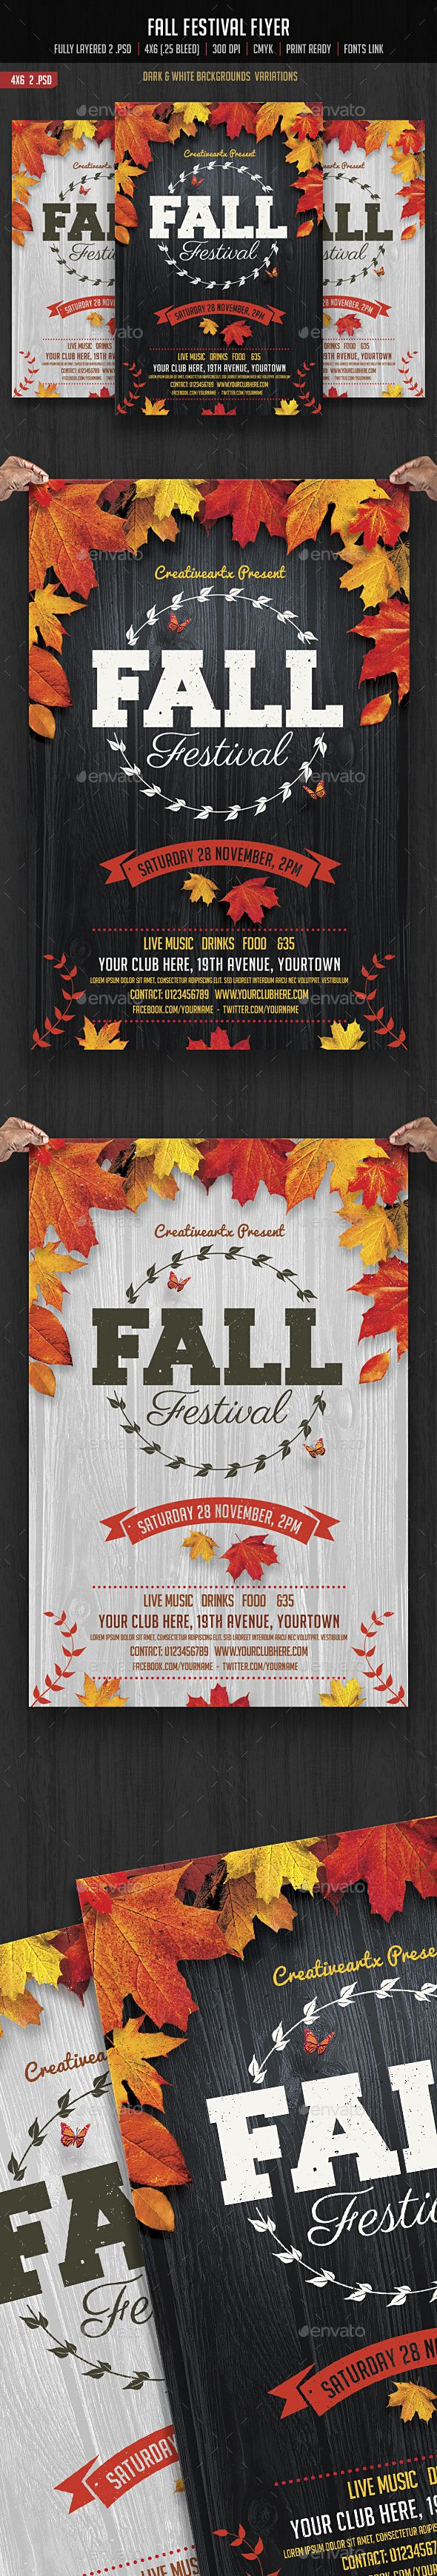 Fall Festival Flyer Template PSD. Download here: https://graphicriver.net/item/fall-festival-flyer/17495360?ref=ksioks